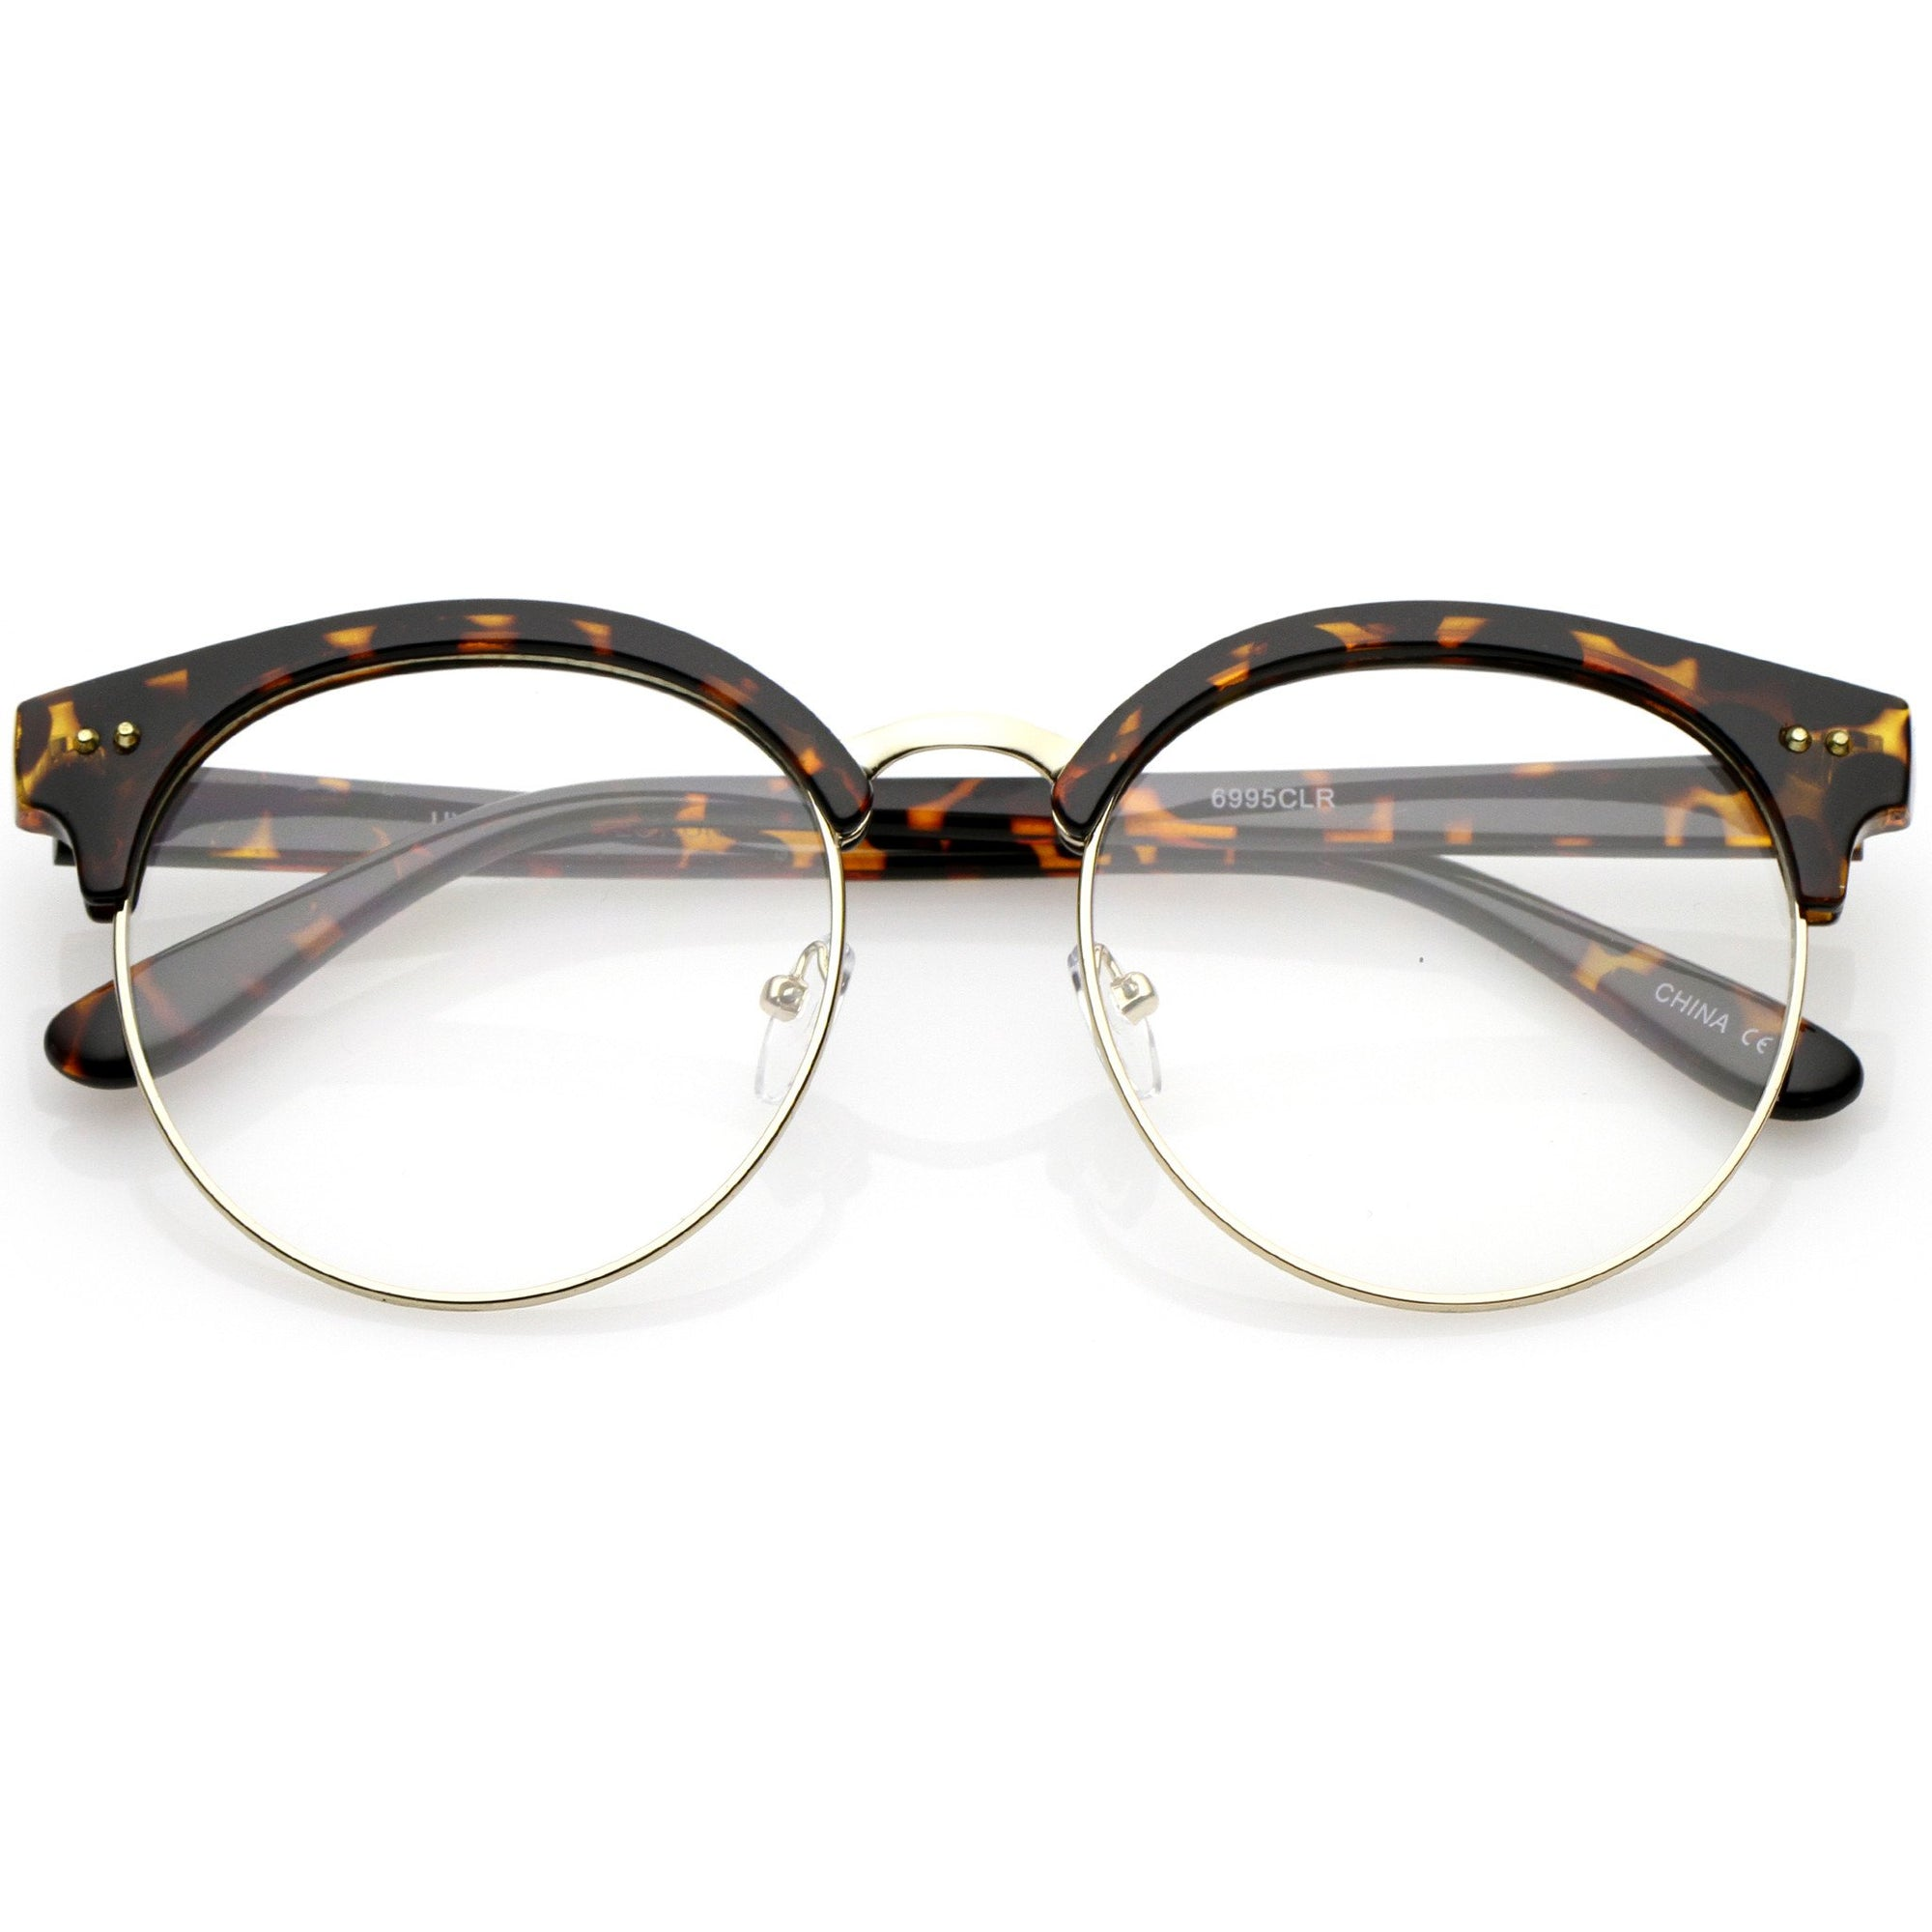 61f1048bbd ... Round Half Frame Clear Lens Cat Eye Glasses C023 · Tortoise Gold Clear